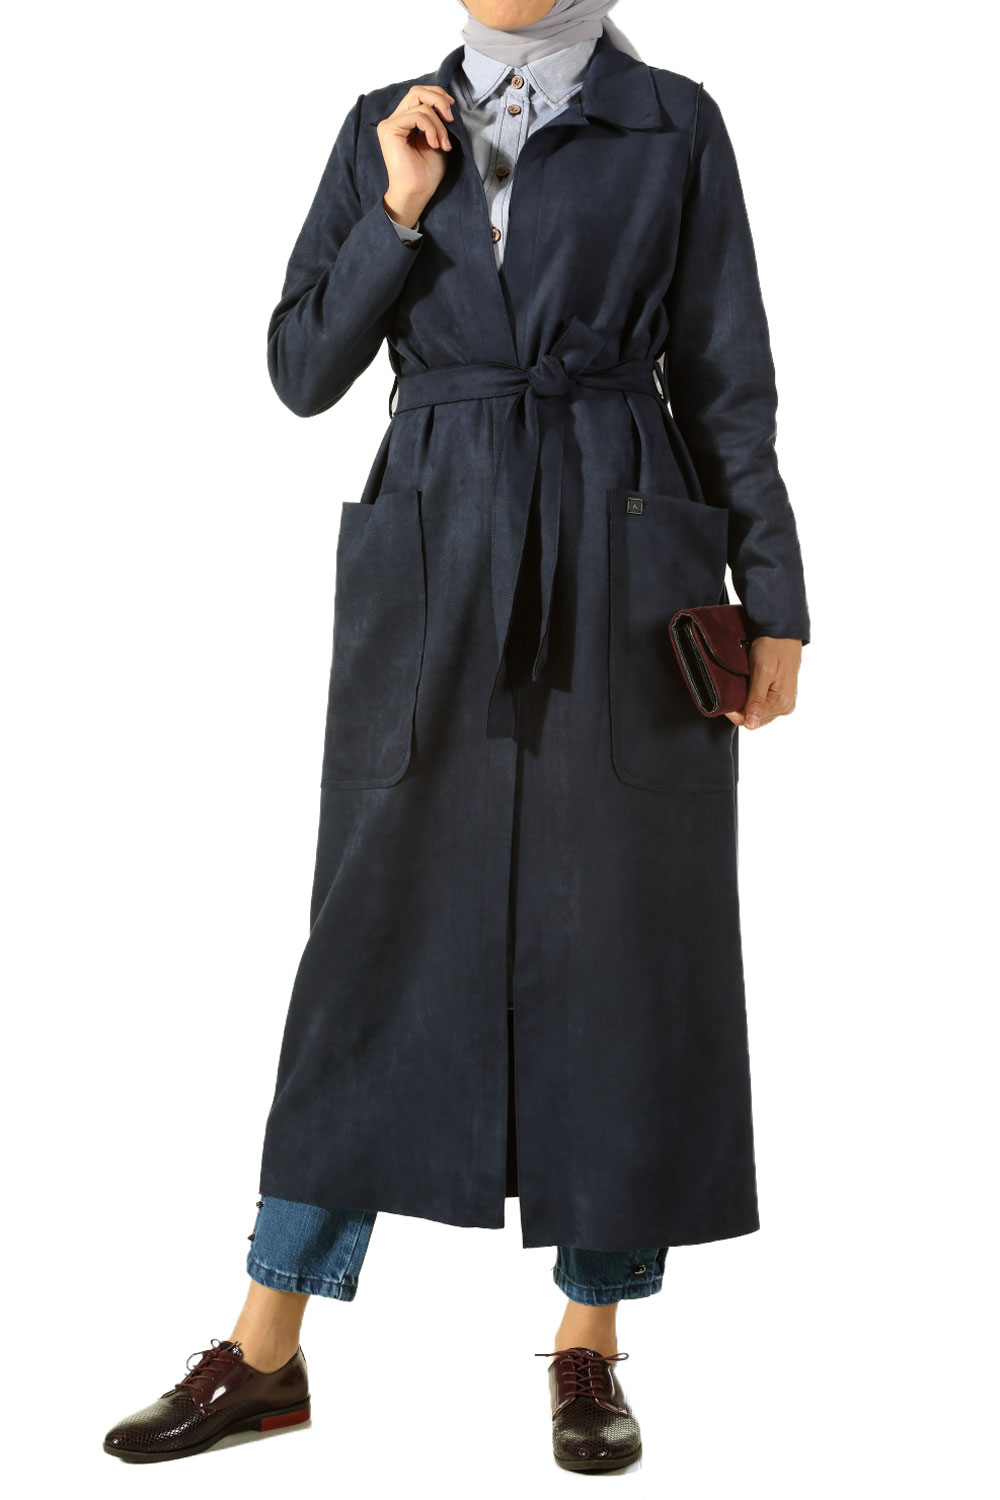 369fb181f2 Navy Blue BELTED SUEDE TRENCH COAT - 70157   Allday